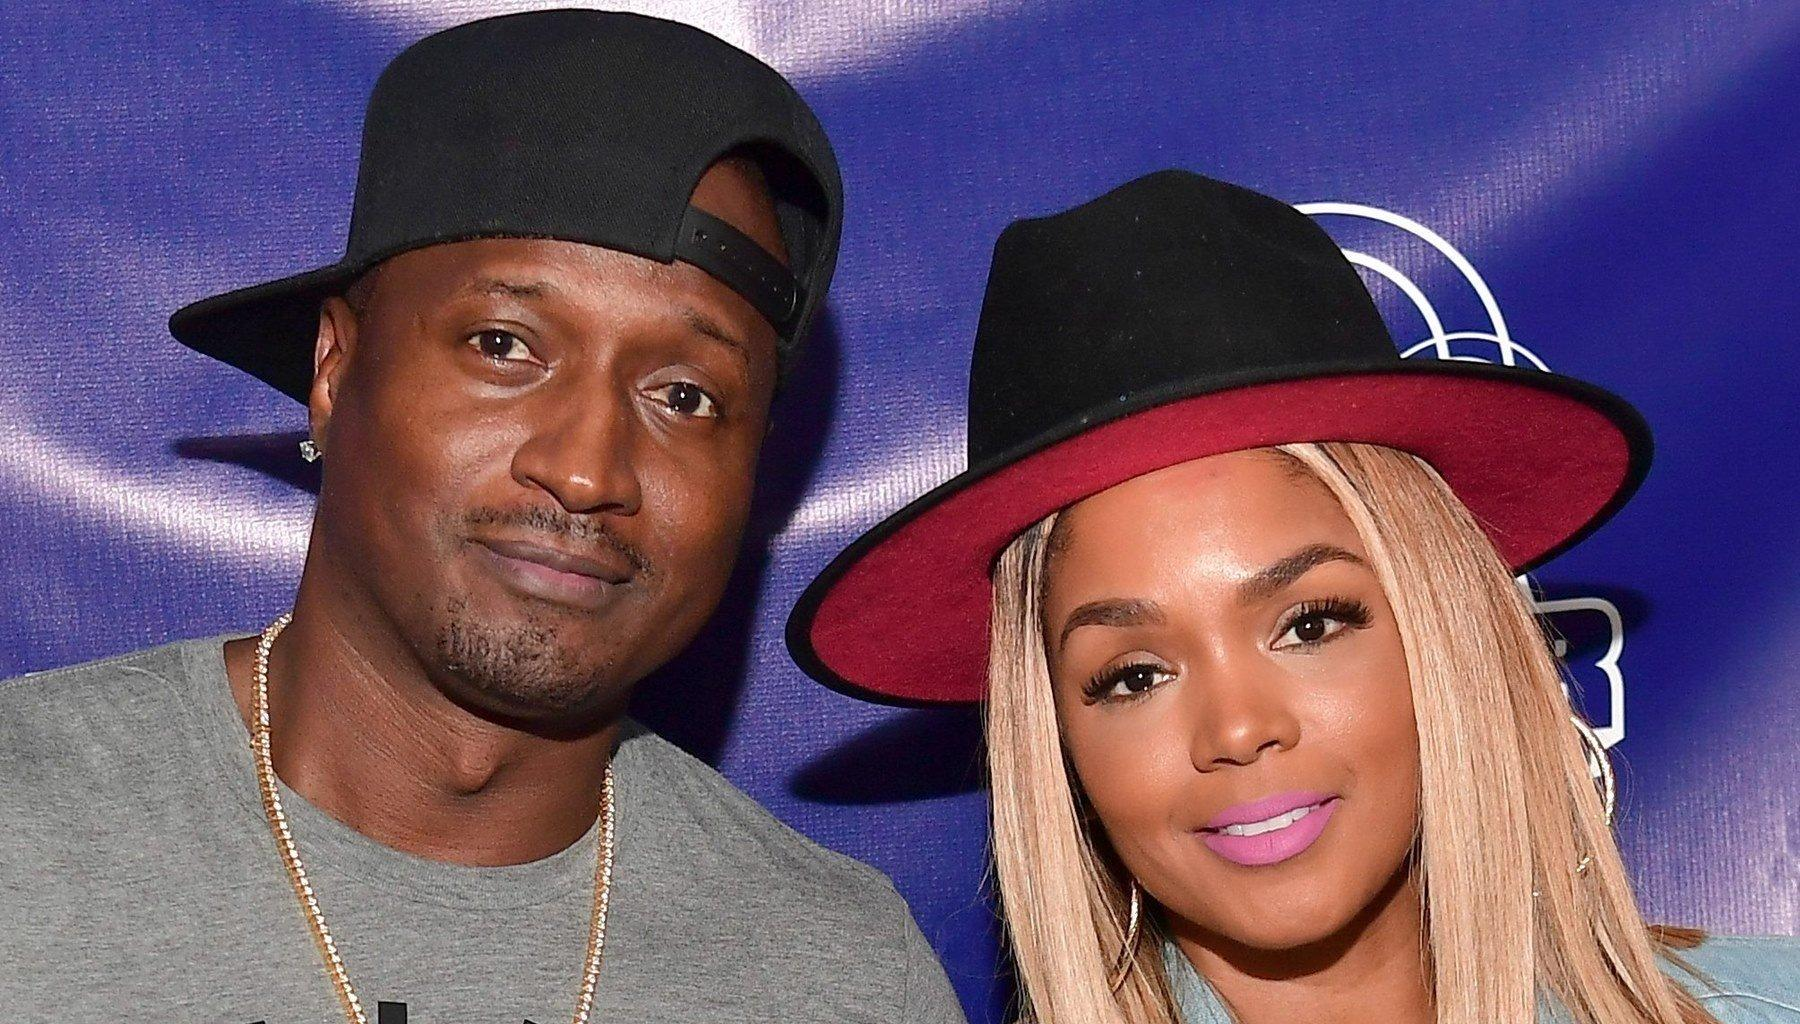 Rasheeda Frost Is Going Crazy In A Hotel With Kirk Frost For Three Days - Check Out Her Video